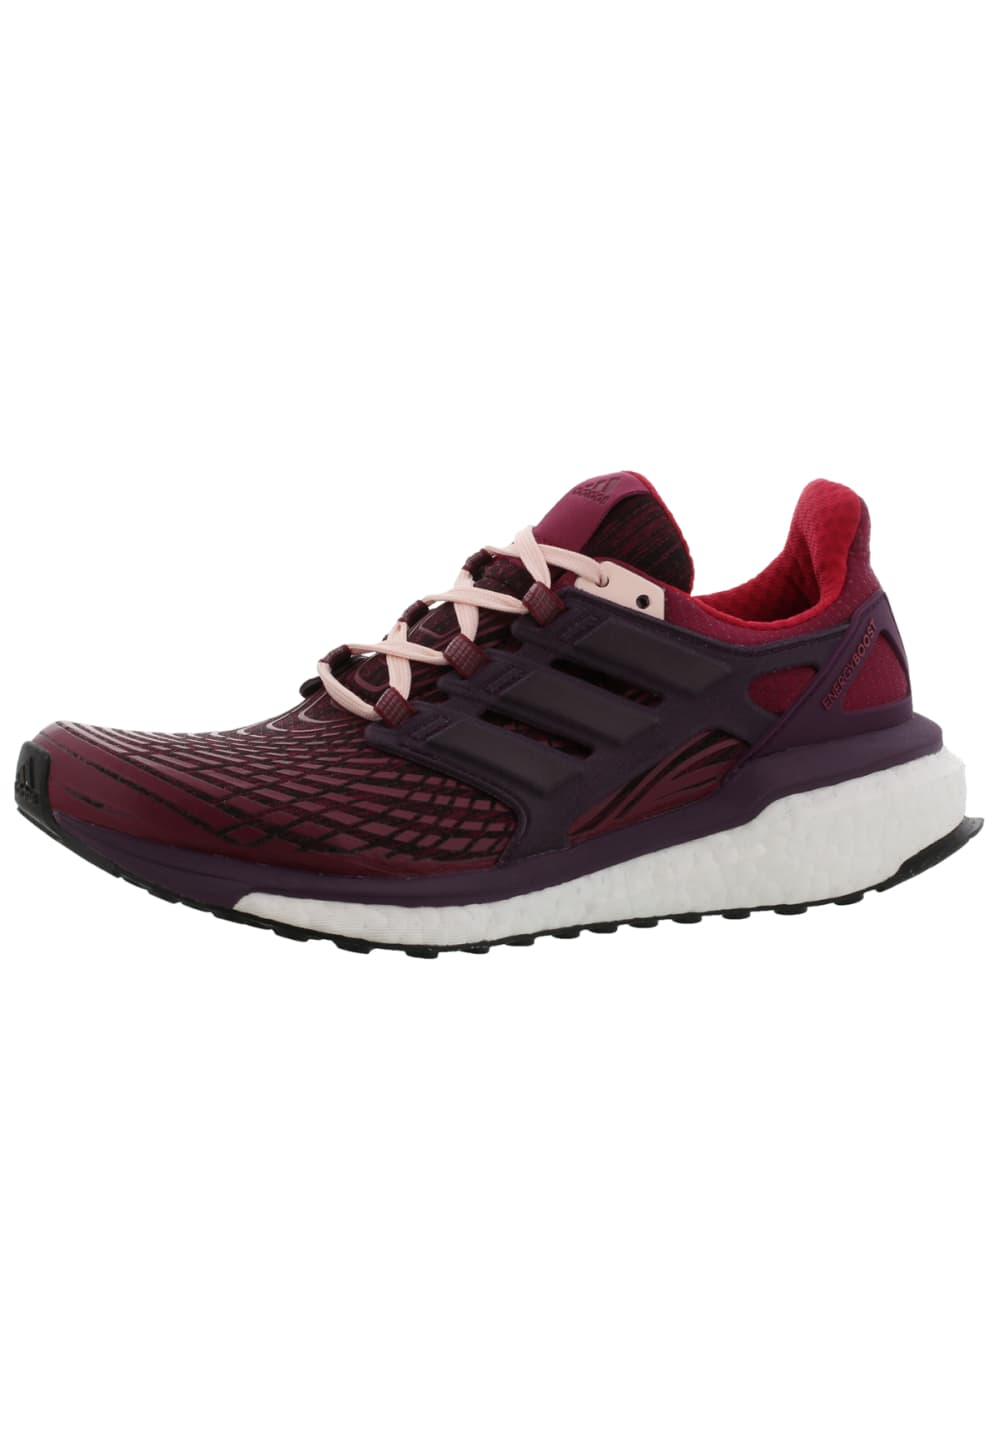 pas mal 0d15c b527b adidas Energy Boost - Chaussures running pour Femme - Violet